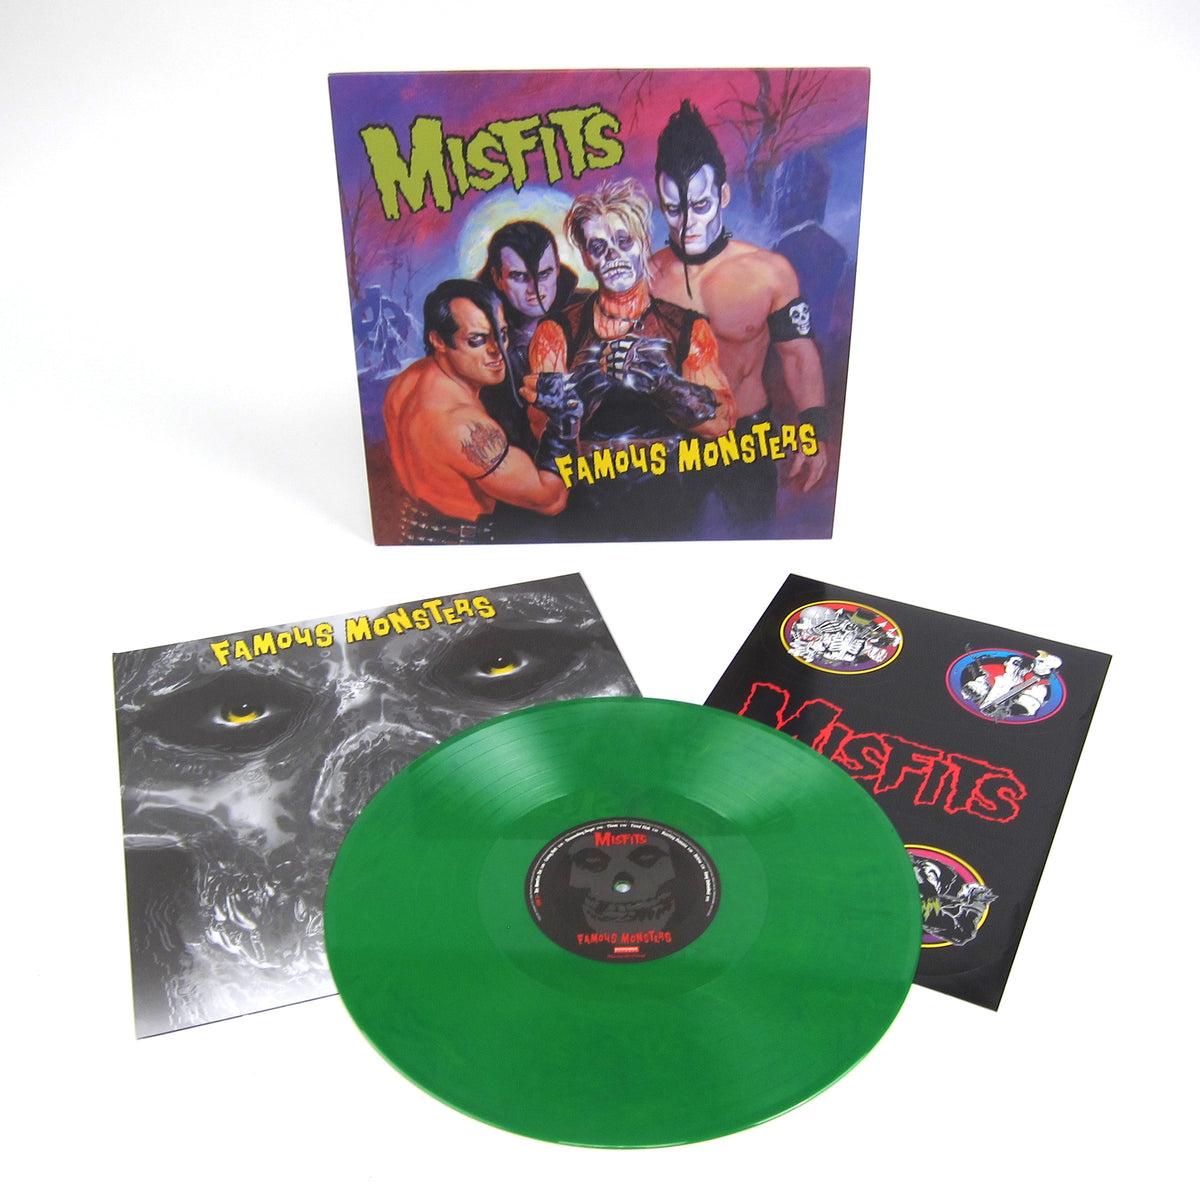 Misfits: Famous Monsters (Music On Vinyl 180g, Colored Vinyl) Vinyl LP